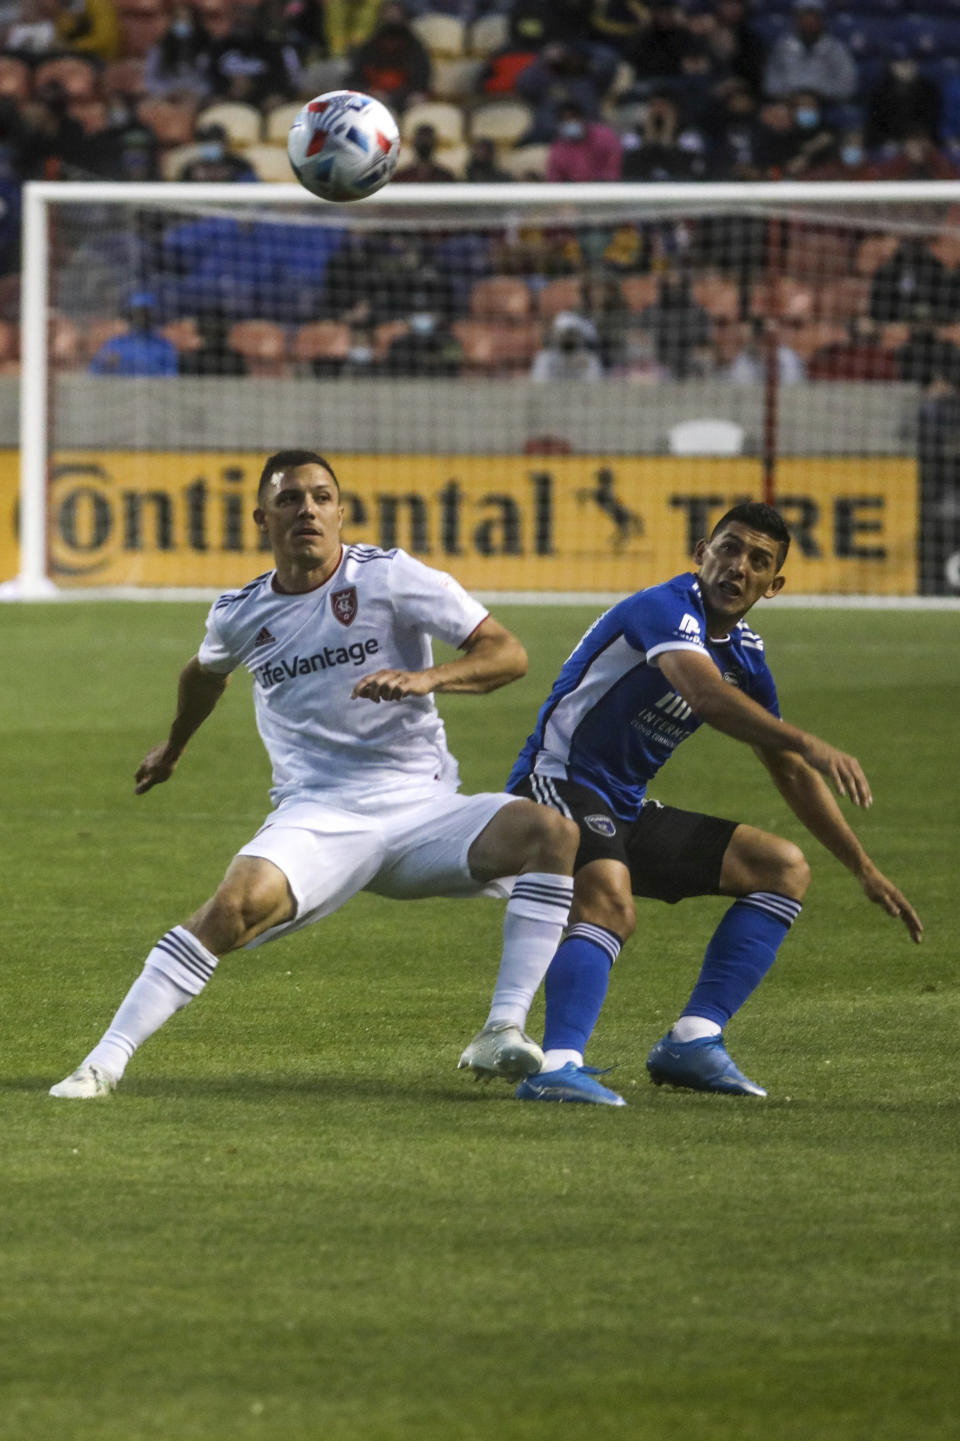 Real Salt Lake defender Donny Toia (4) fights for the ball with San Jose Earthquake midfielder Cristian Espinoza (10) during an MLS soccer match at Rio Tinto Stadium in Sandy, Utah, Friday, May 7, 2021. (Annie Barker/The Deseret News via AP)